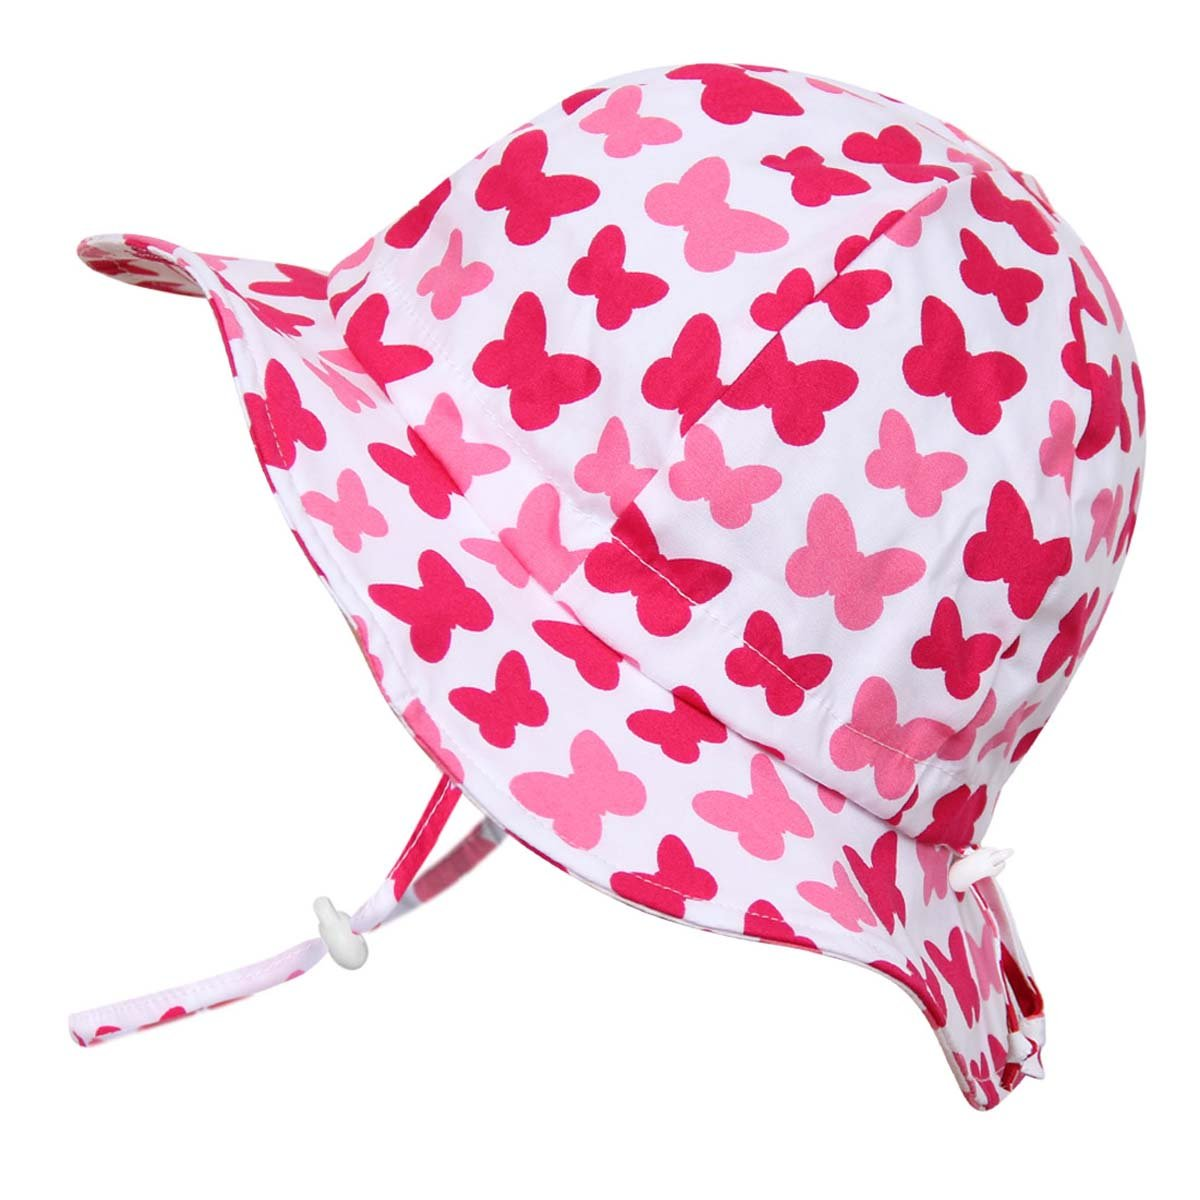 Twinklebelle Children's Cotton Sun Protective Hats 50 UPF, Adjustable, Stay-On, Packable (L: 2-12Y, Floppy Hat: Butterfly)